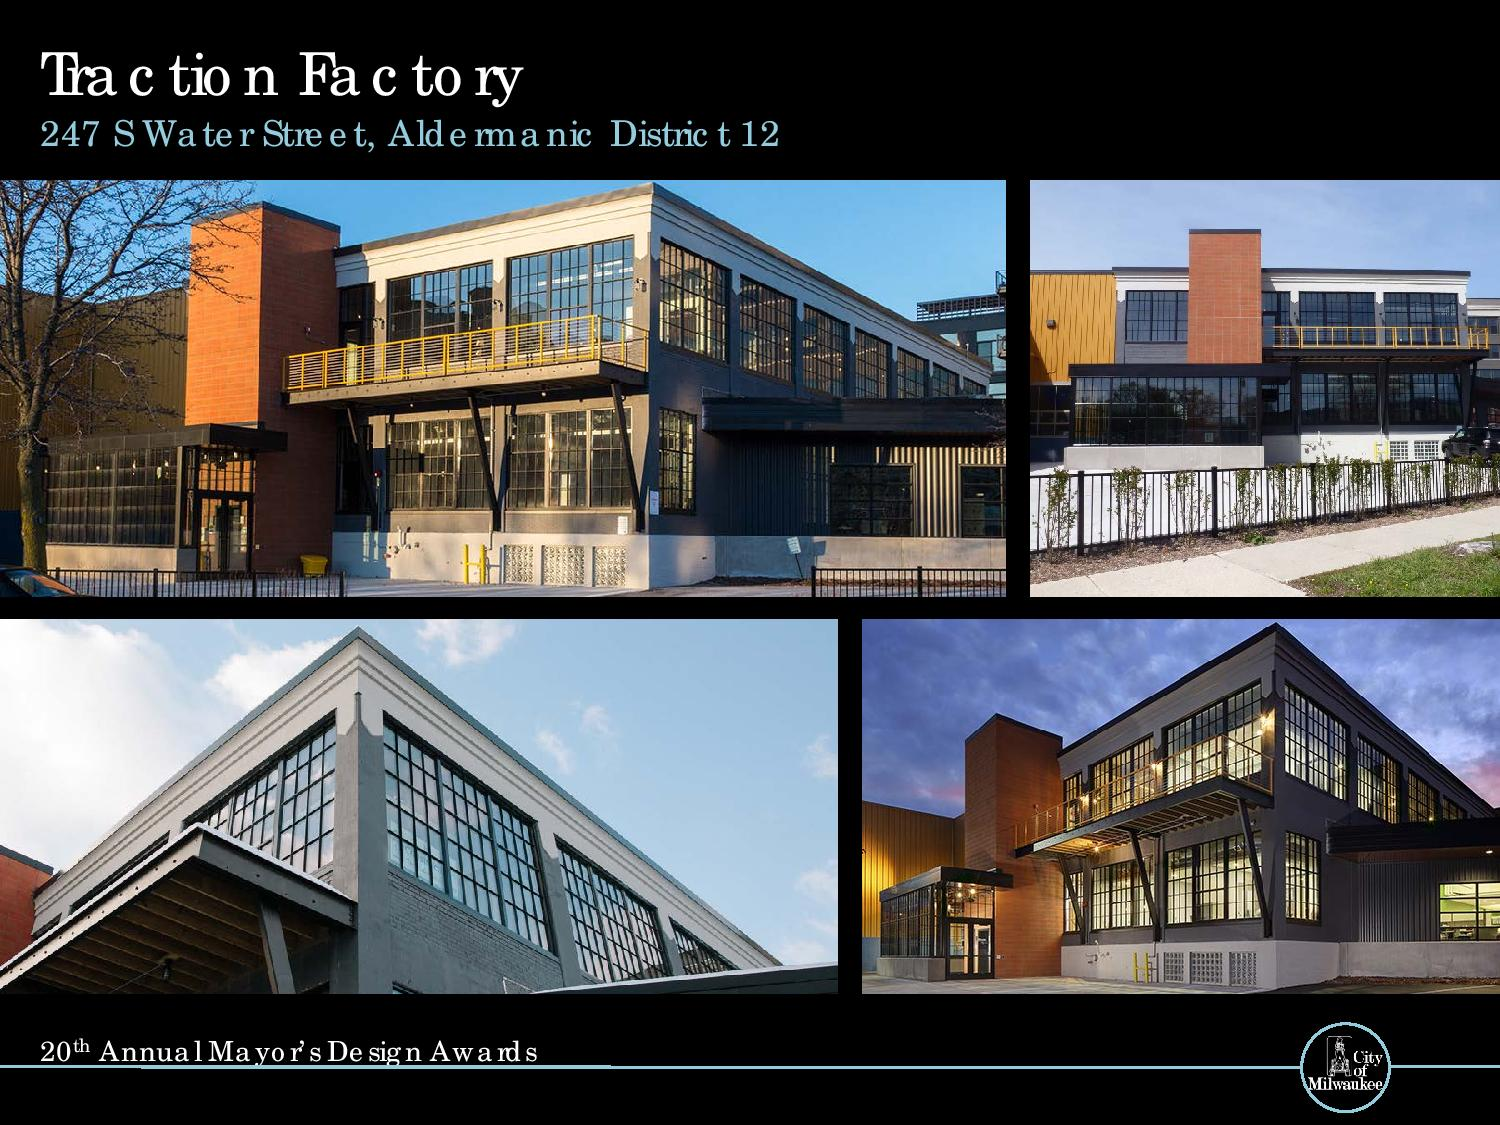 Traction Factory, 247 S. Water St.